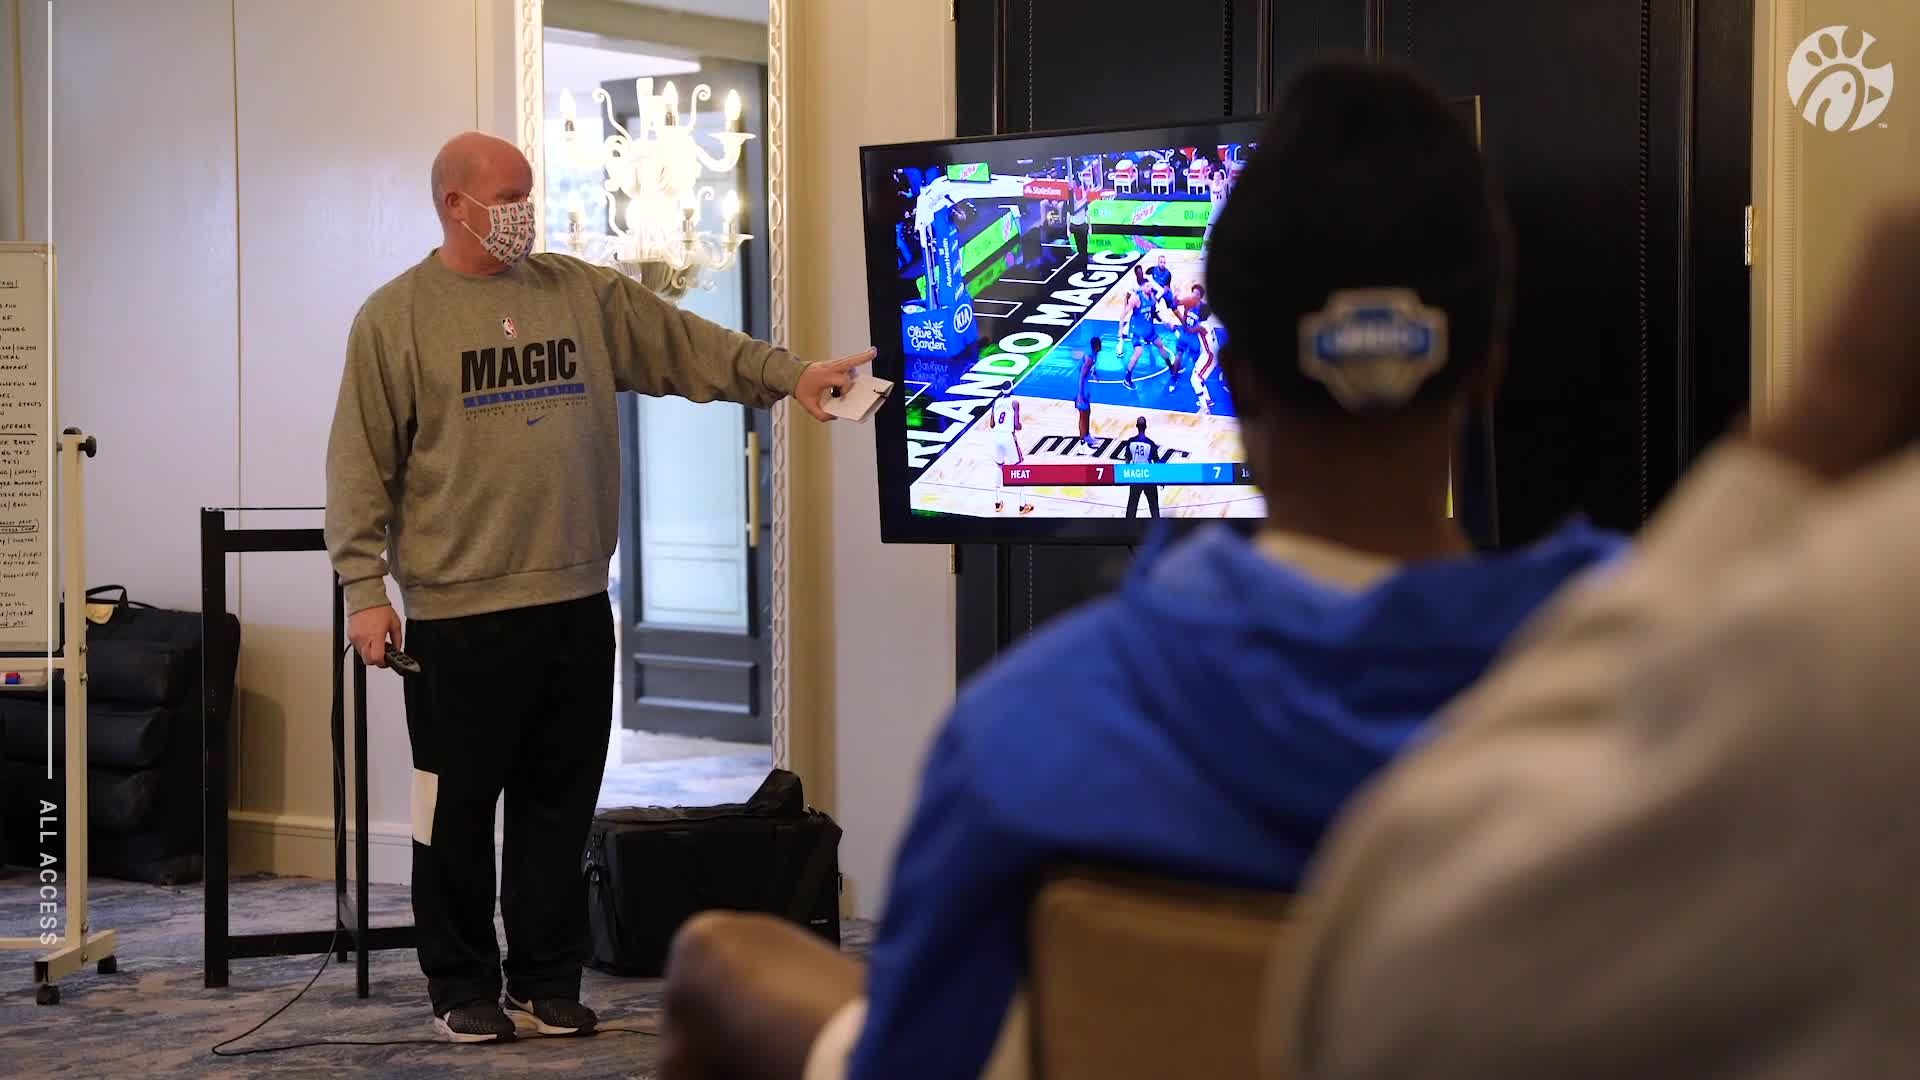 Orlando Magic All Access: Episode 2 | Presented by Chick-fil-A